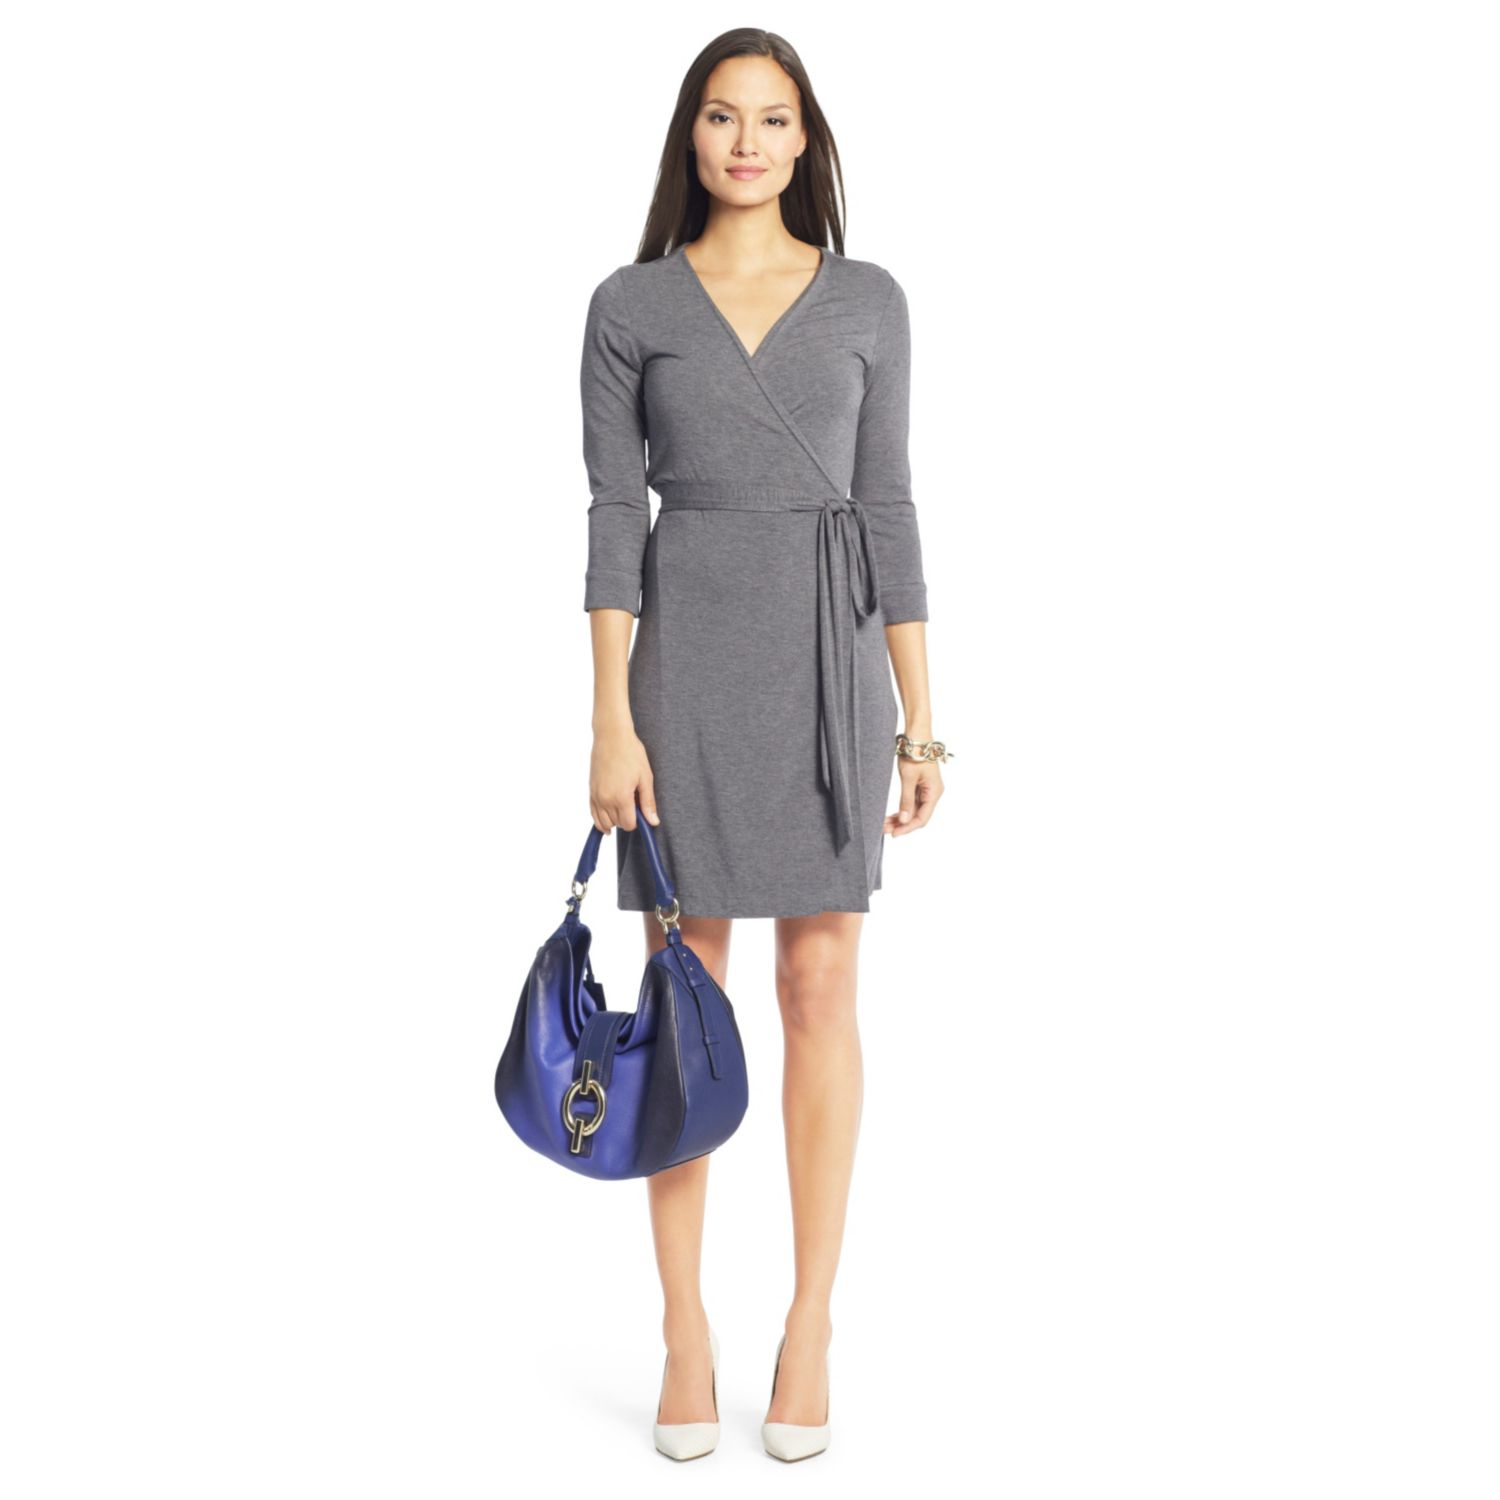 Diane von furstenberg new julian two jersey wrap dress in for Diane von furstenberg clothes